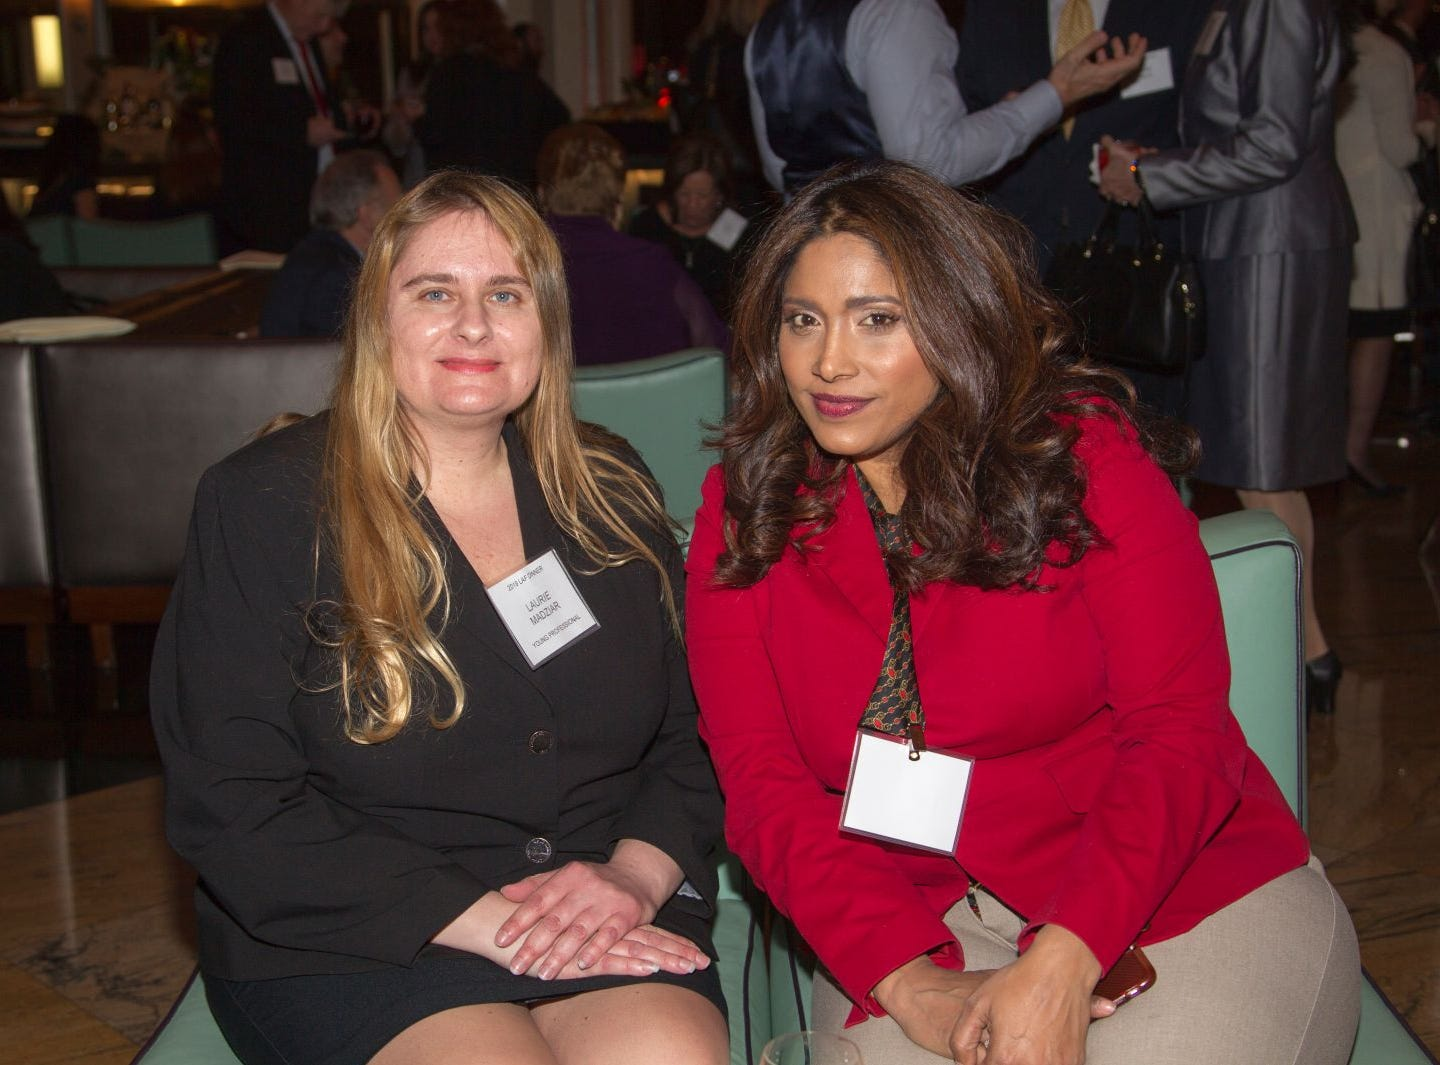 Laurie Madziar, Cindy Paul. Eva's Village hosted its second annual Lawyers, Accountants and Financial Professionals Benefit Dinner at Westmount Country Club in Woodland Park. 02/21/2019